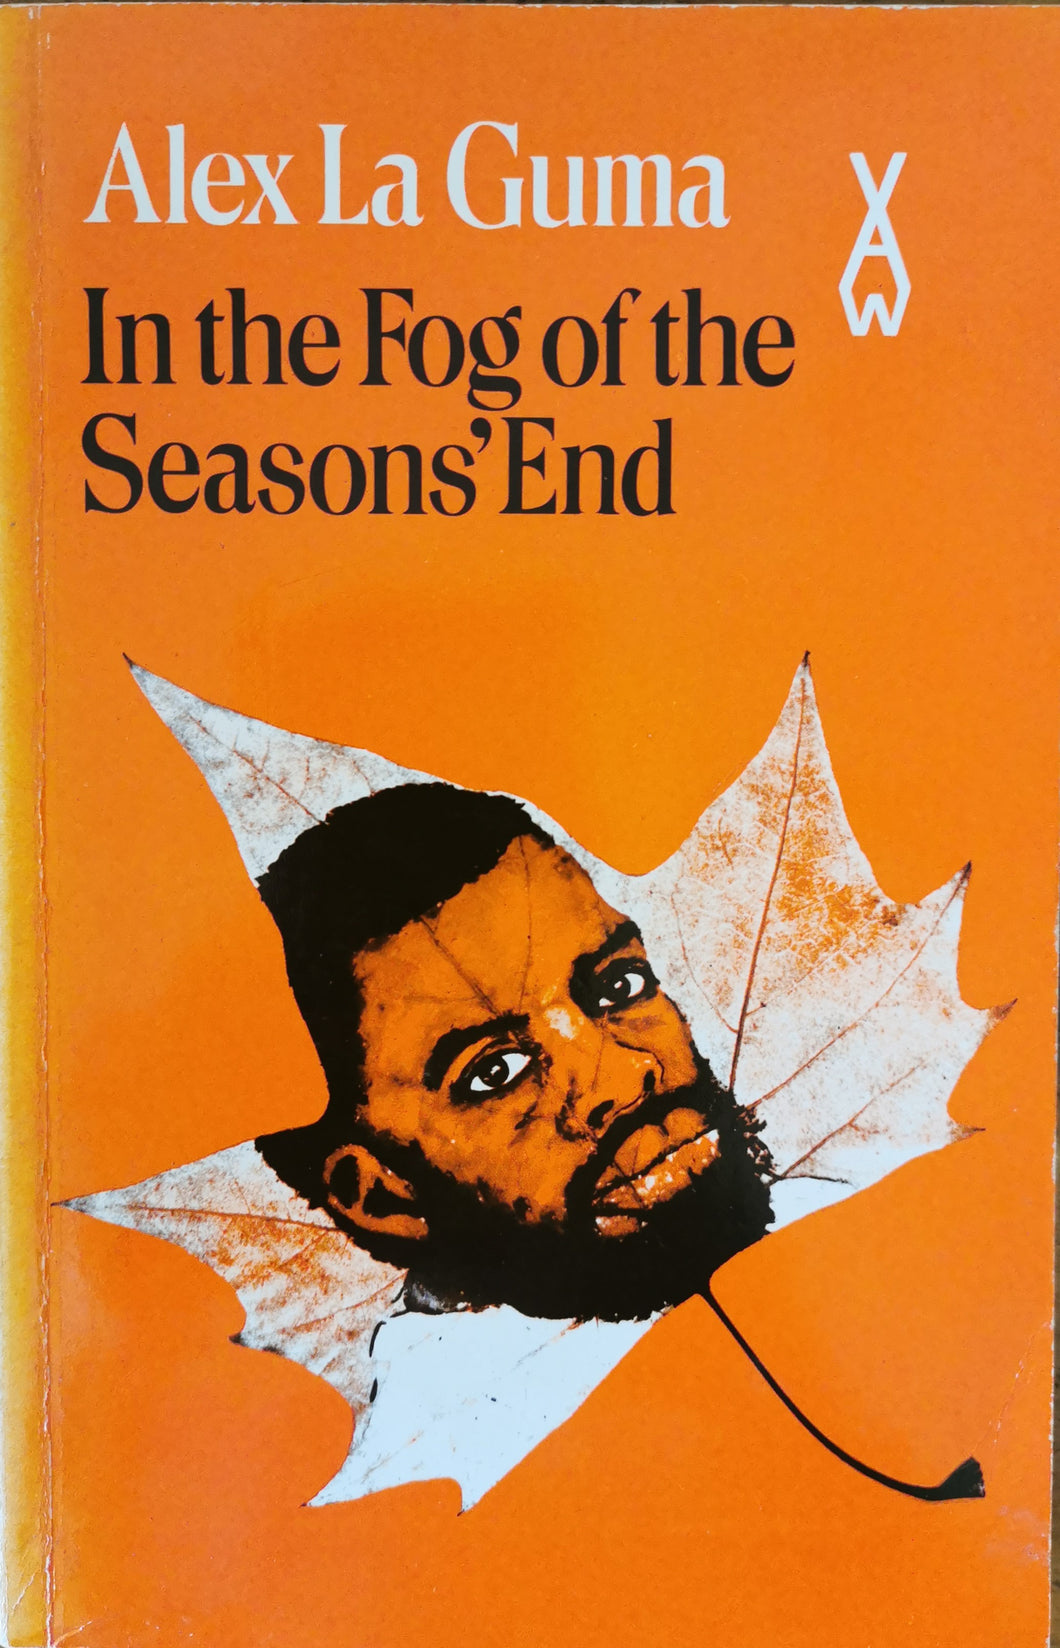 Alex la Guma - In the Fog of the Season's End